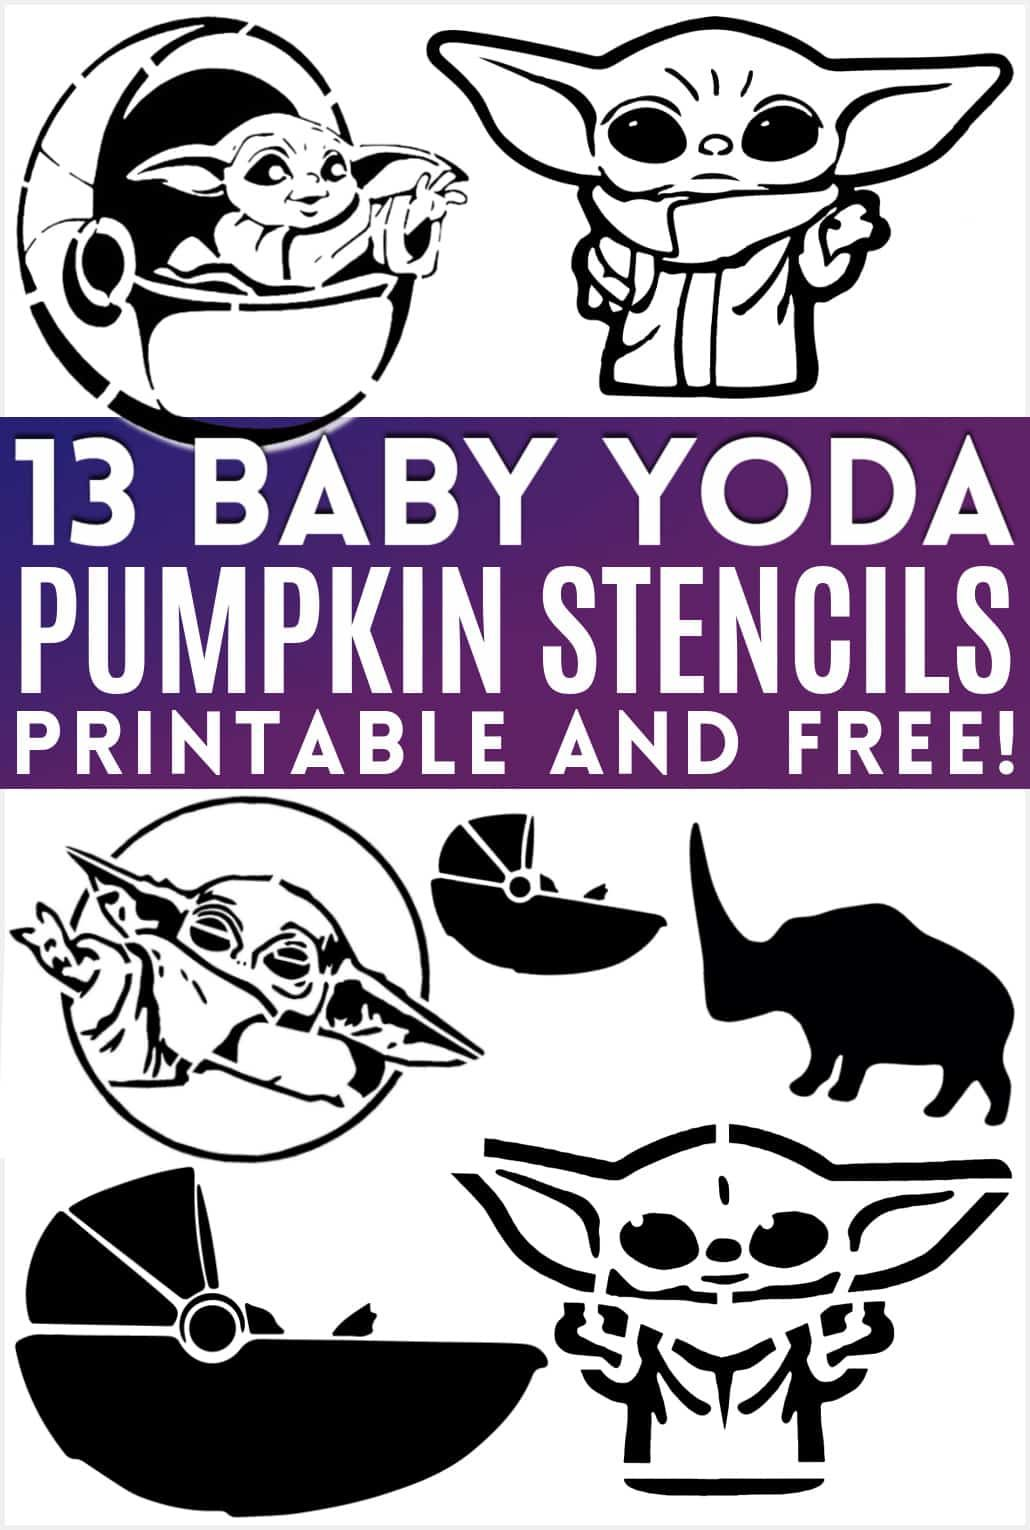 Free Baby Yoda Pumpkin Templates Download 13 Printable